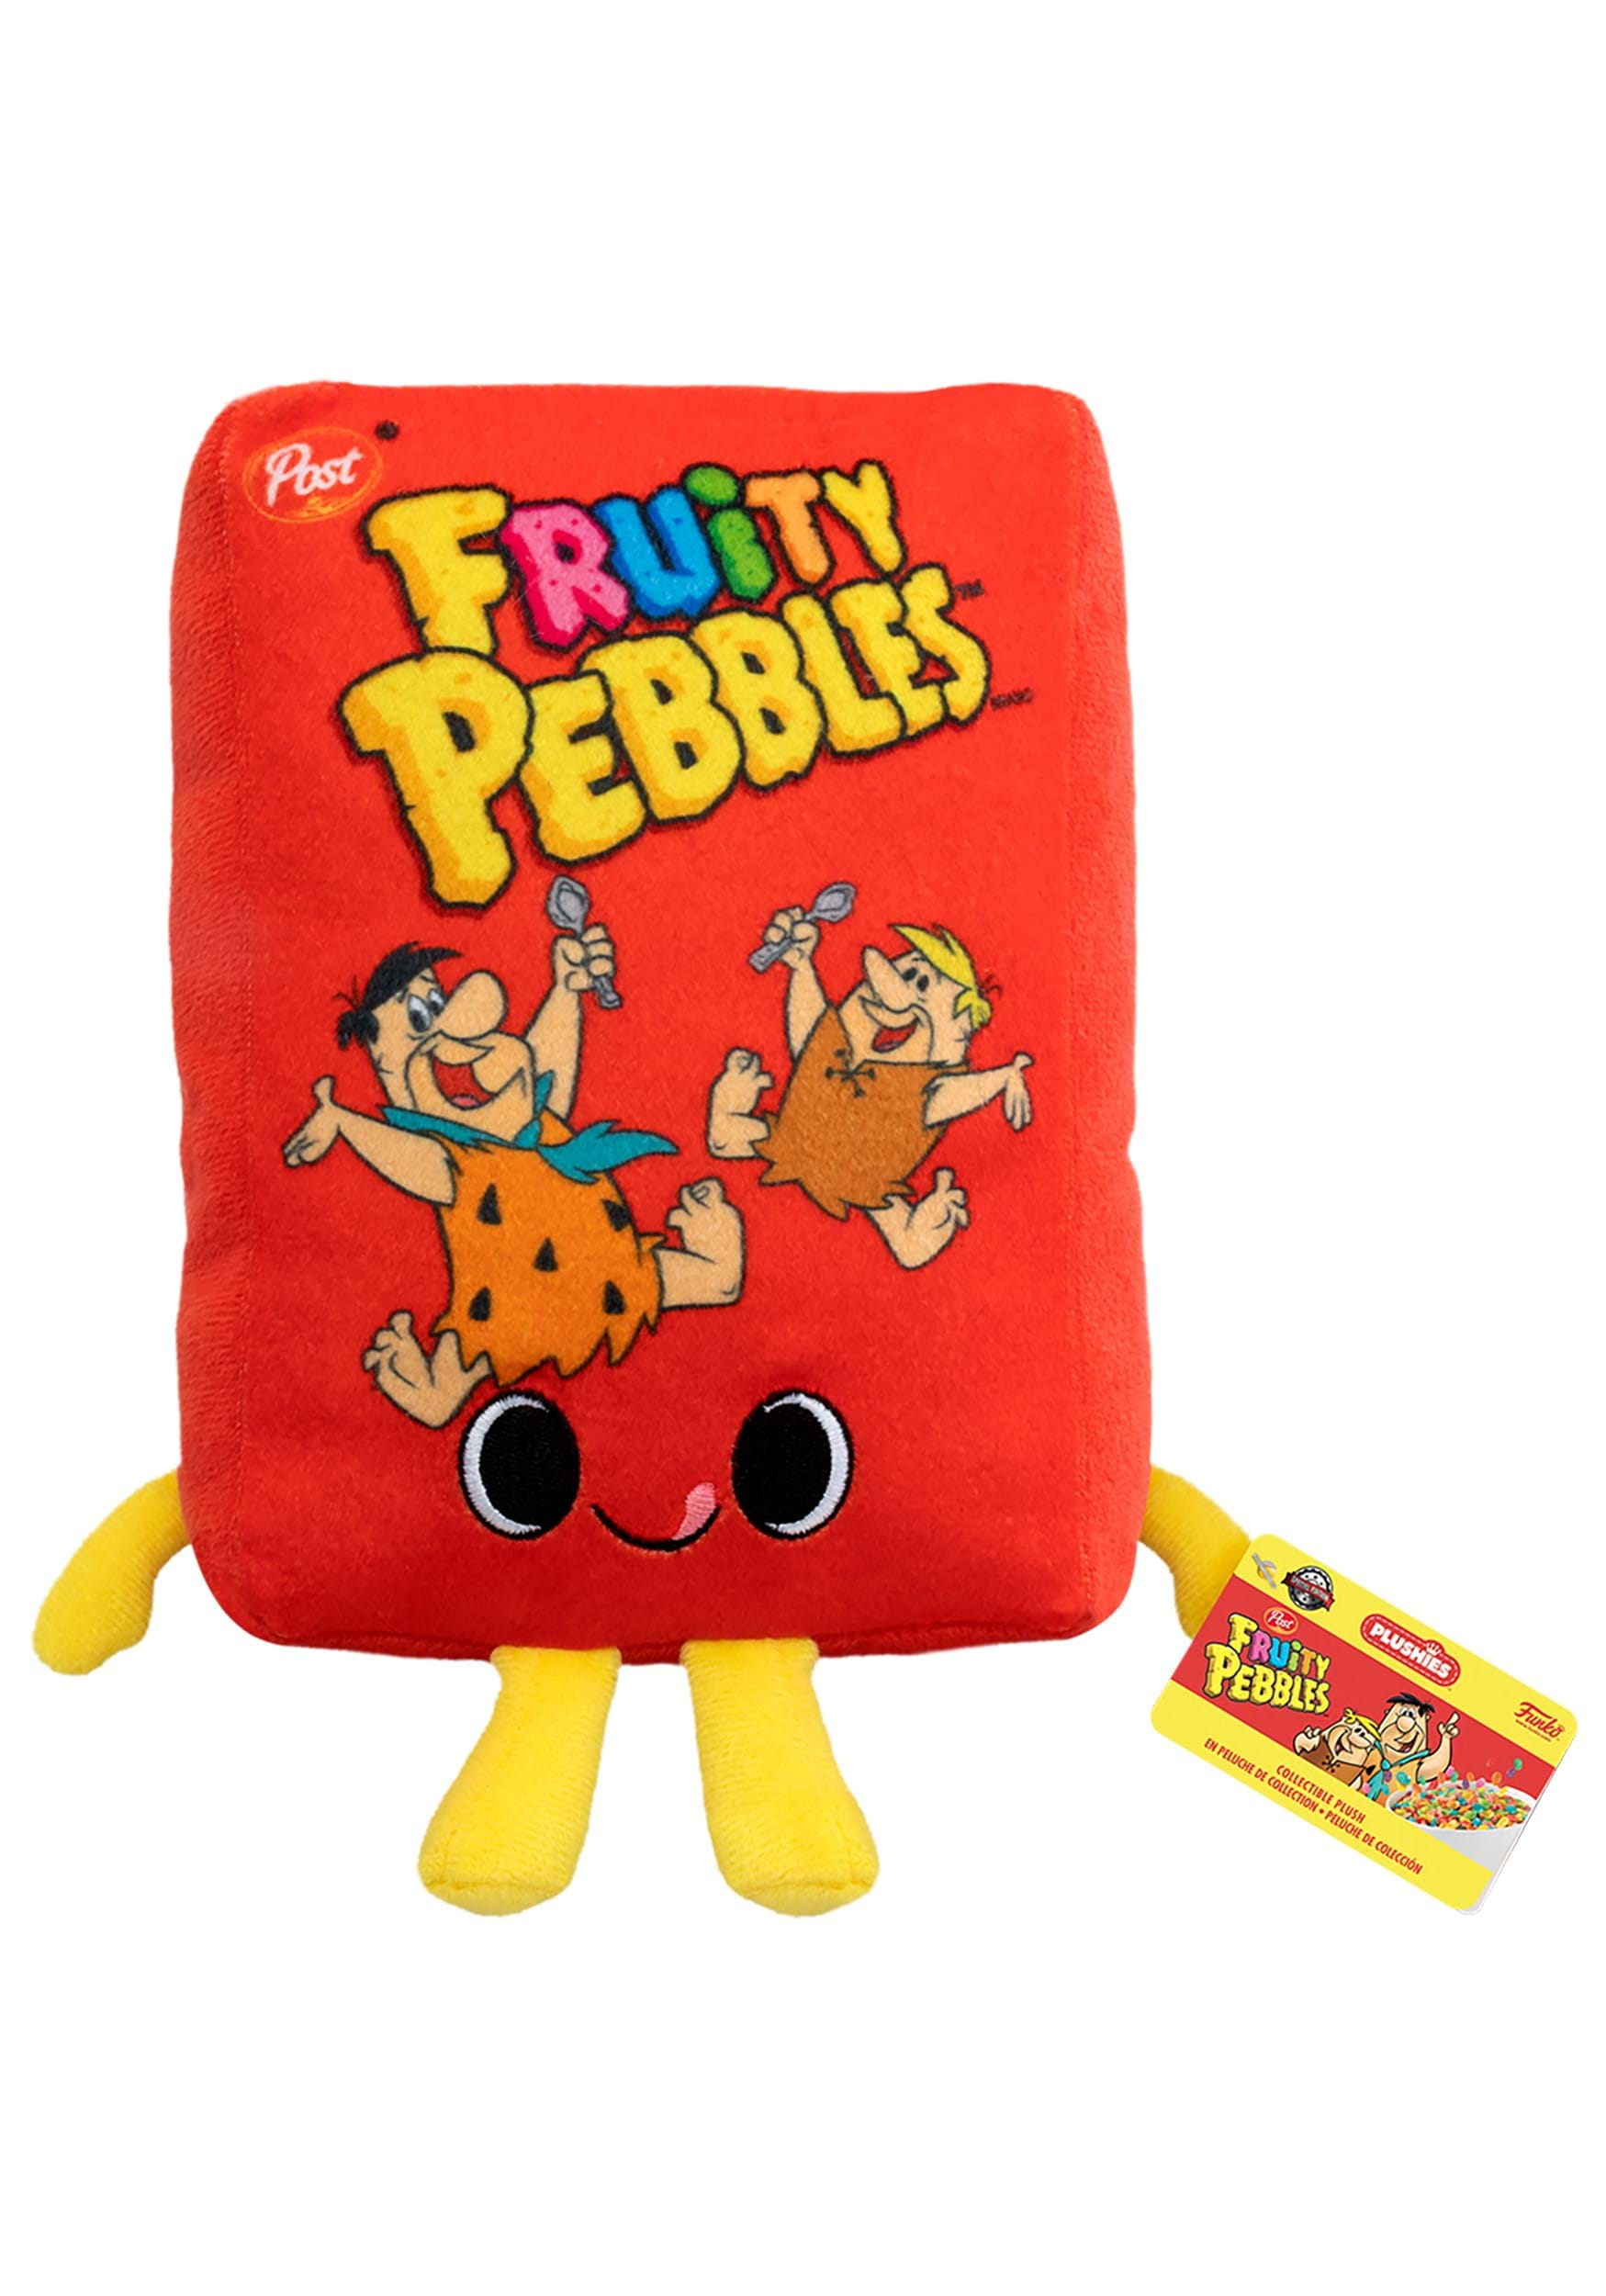 Funko Fruity Pebbles Post Cereal Box Stuffed Toy